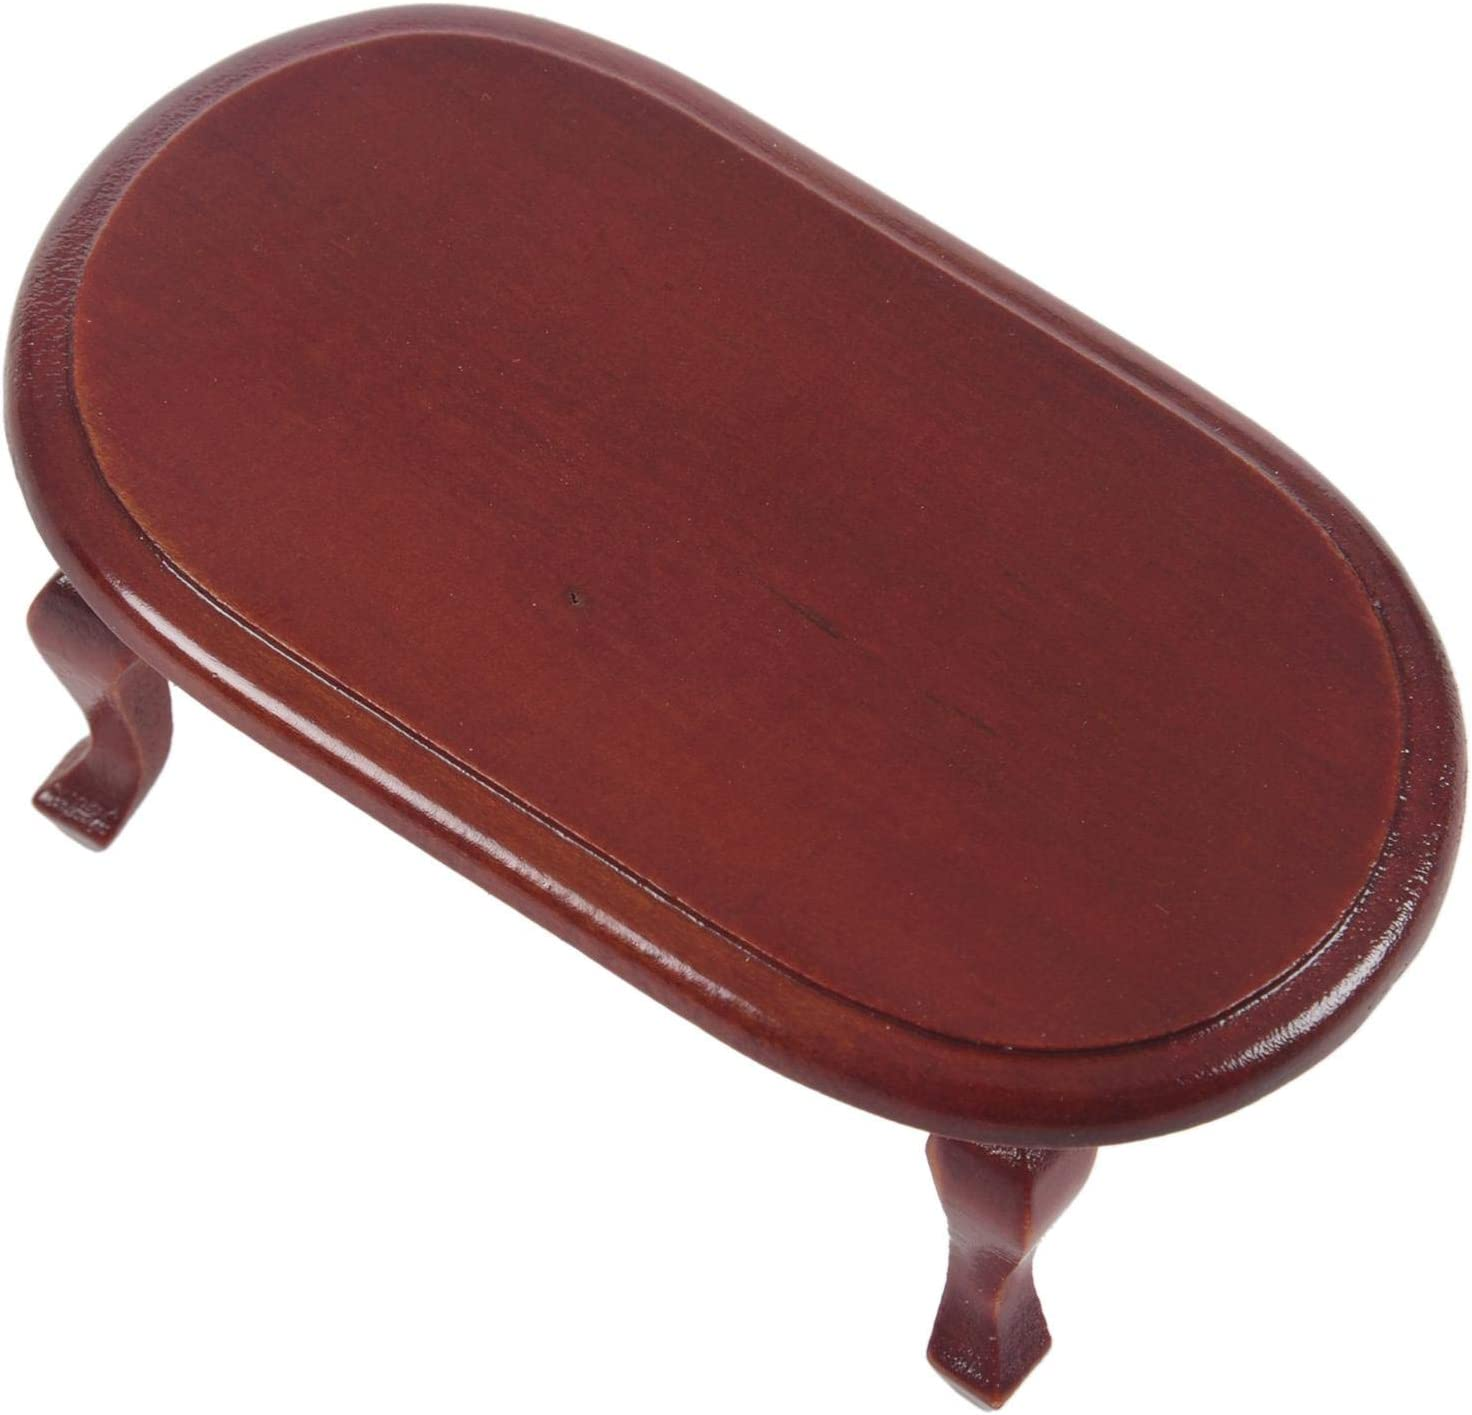 Andifany 1:12 Dollhouse Miniature Coffee Table Living Room Furniture Doll House Red Table